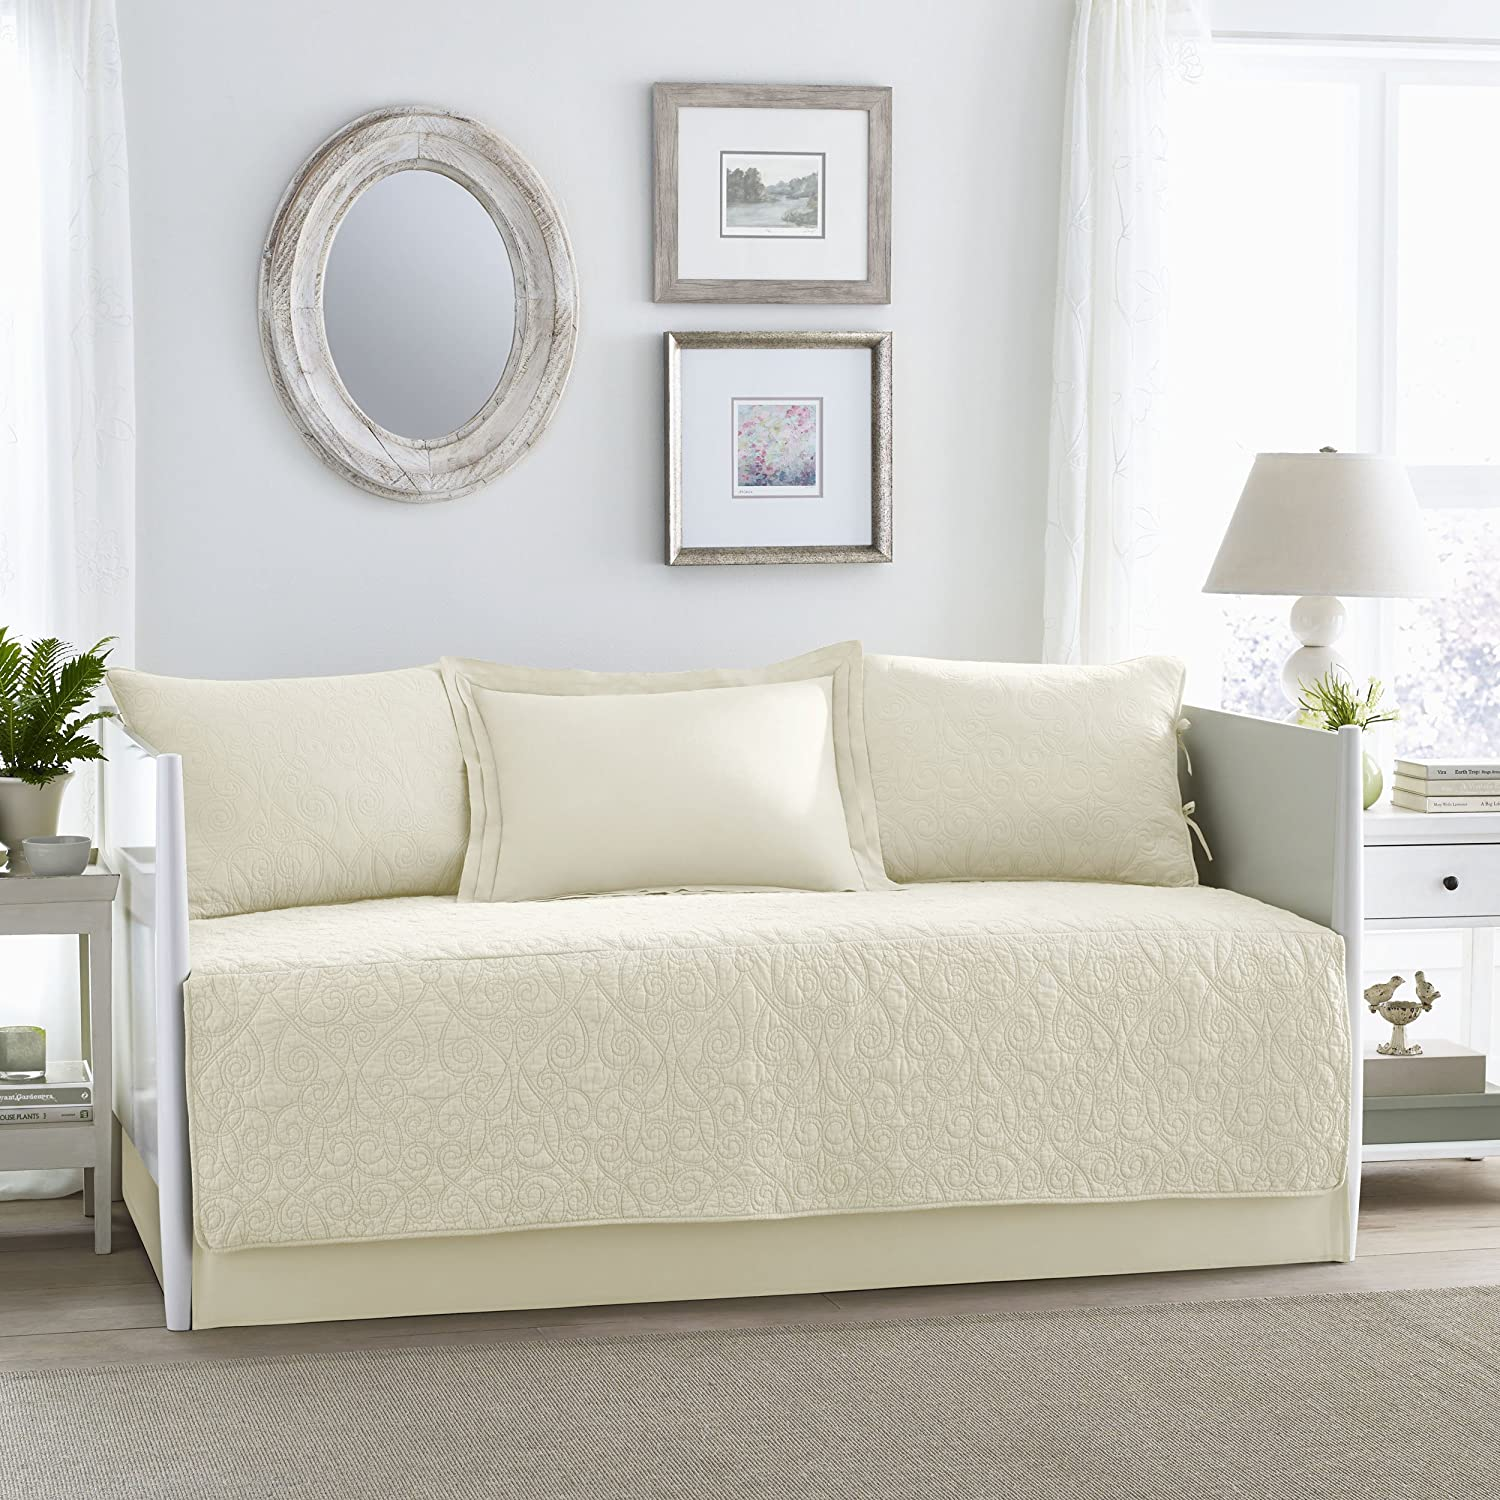 Amazon.com: Laura Ashley Felicity 5 Piece Quilt Set, Ivory, Daybed ...